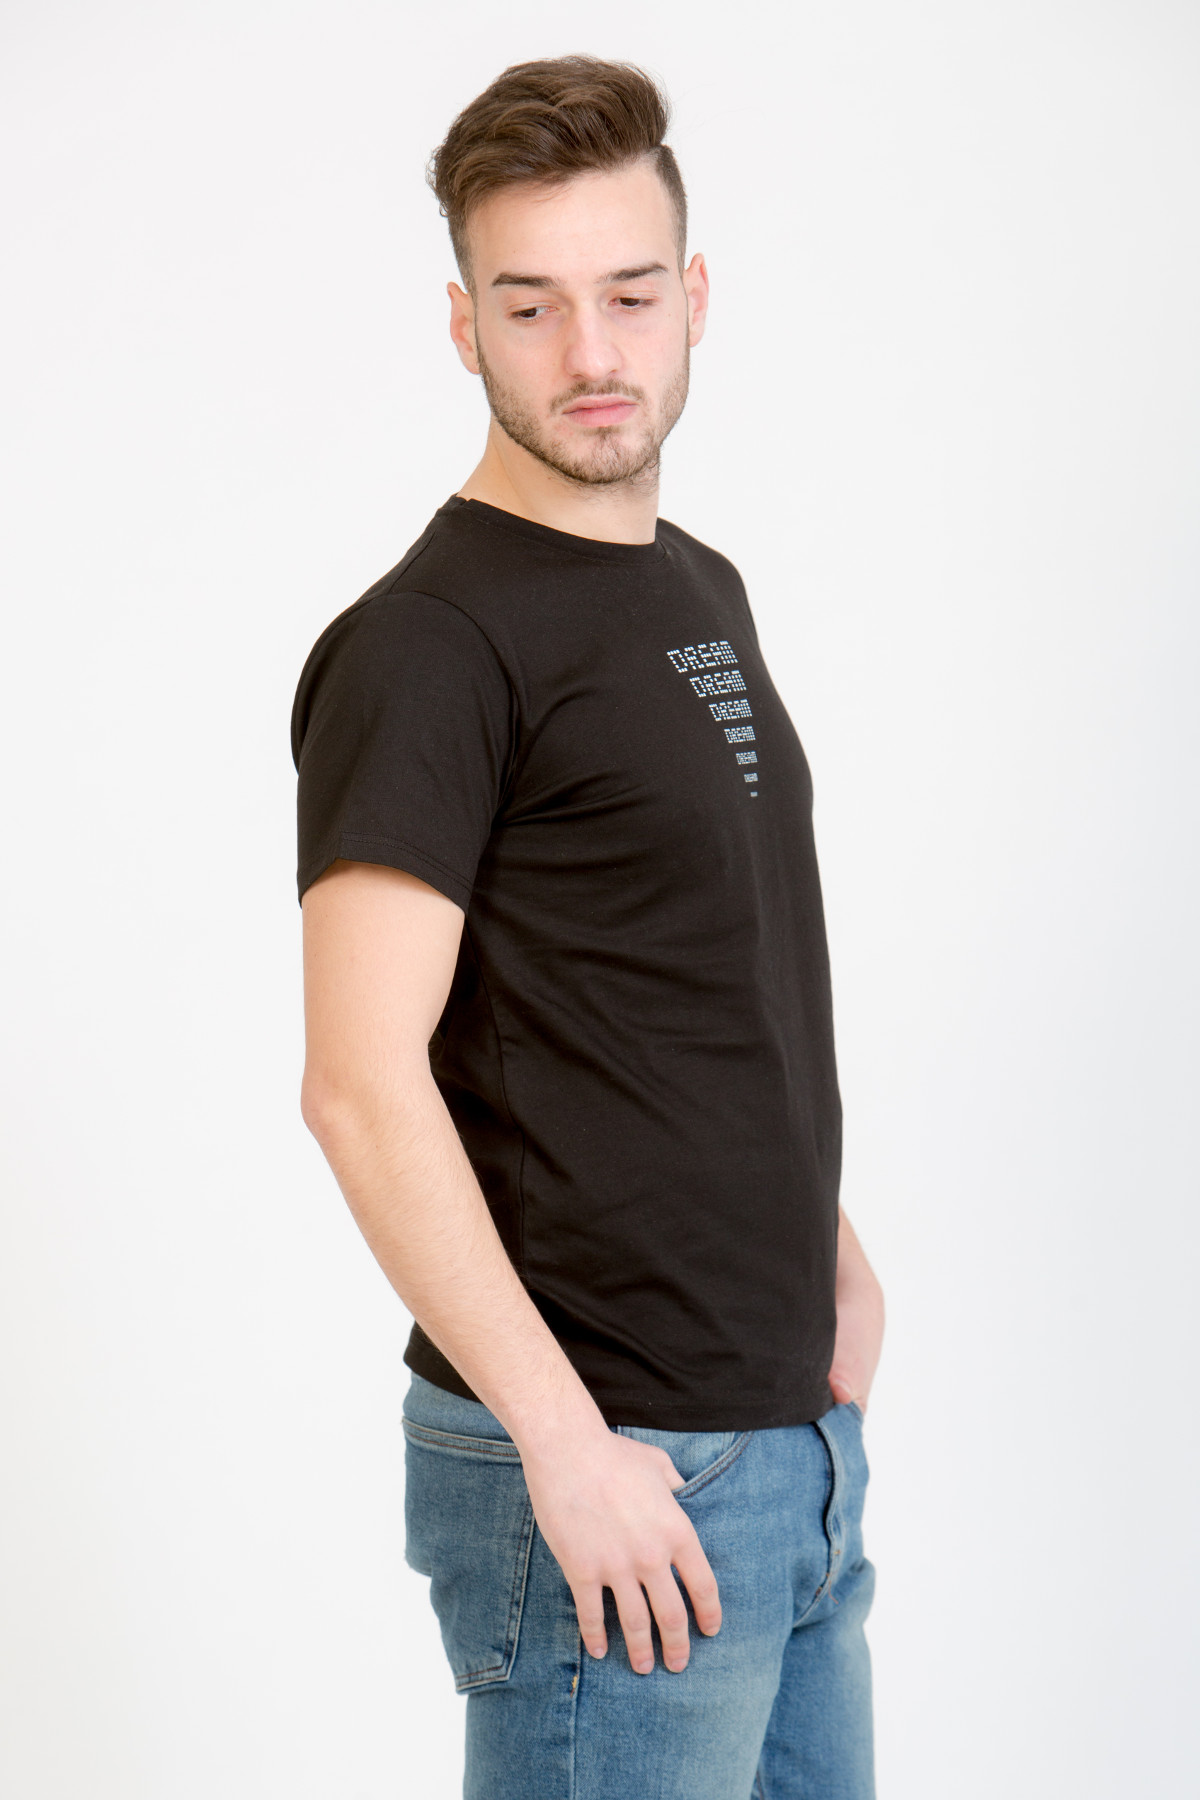 LERÊVERIES - T-shirt Uomo Eco DREAM Colore Nero - B